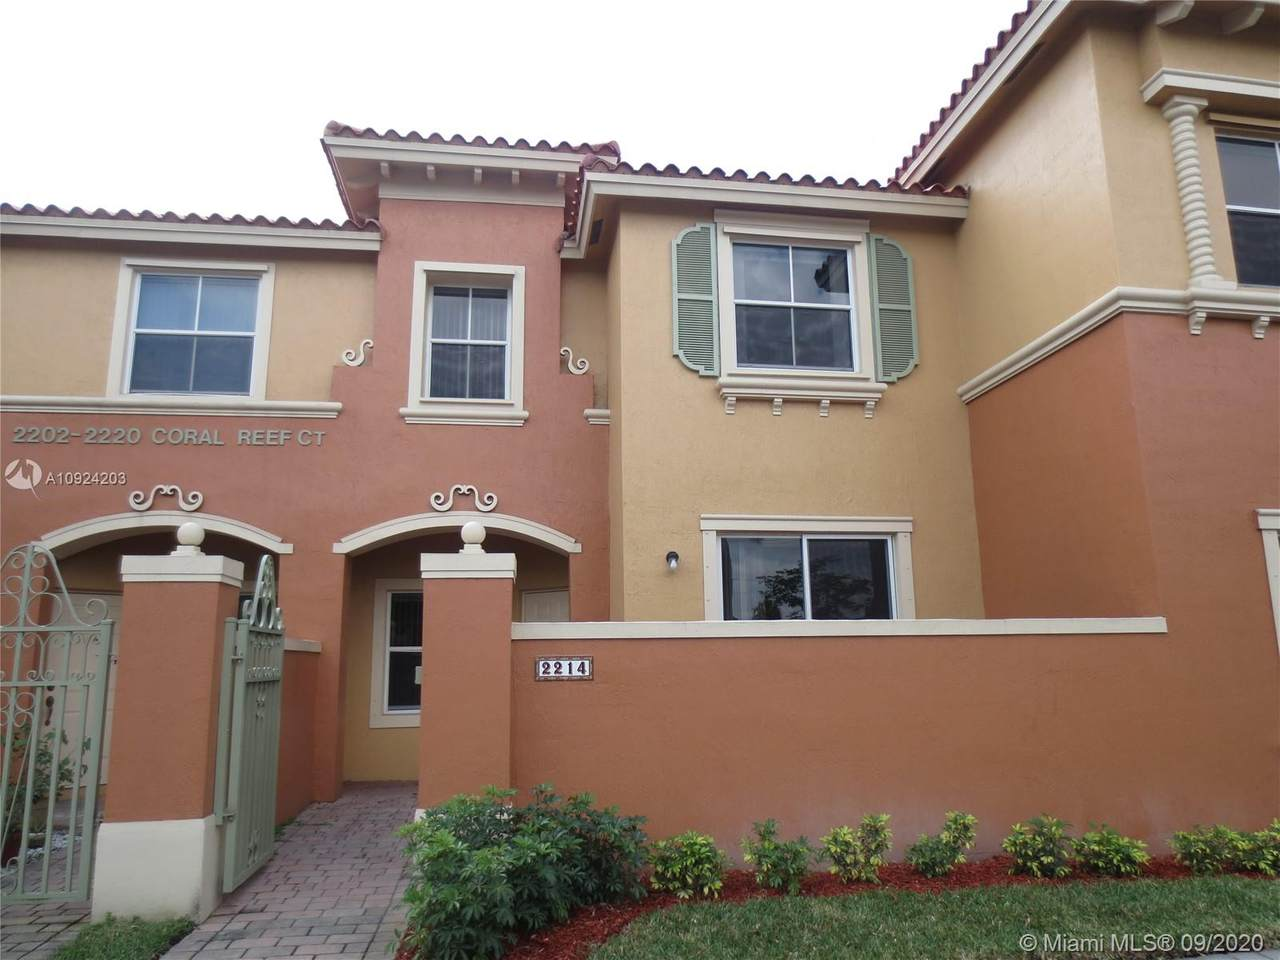 2214 Coral Reef Ct - Photo 1